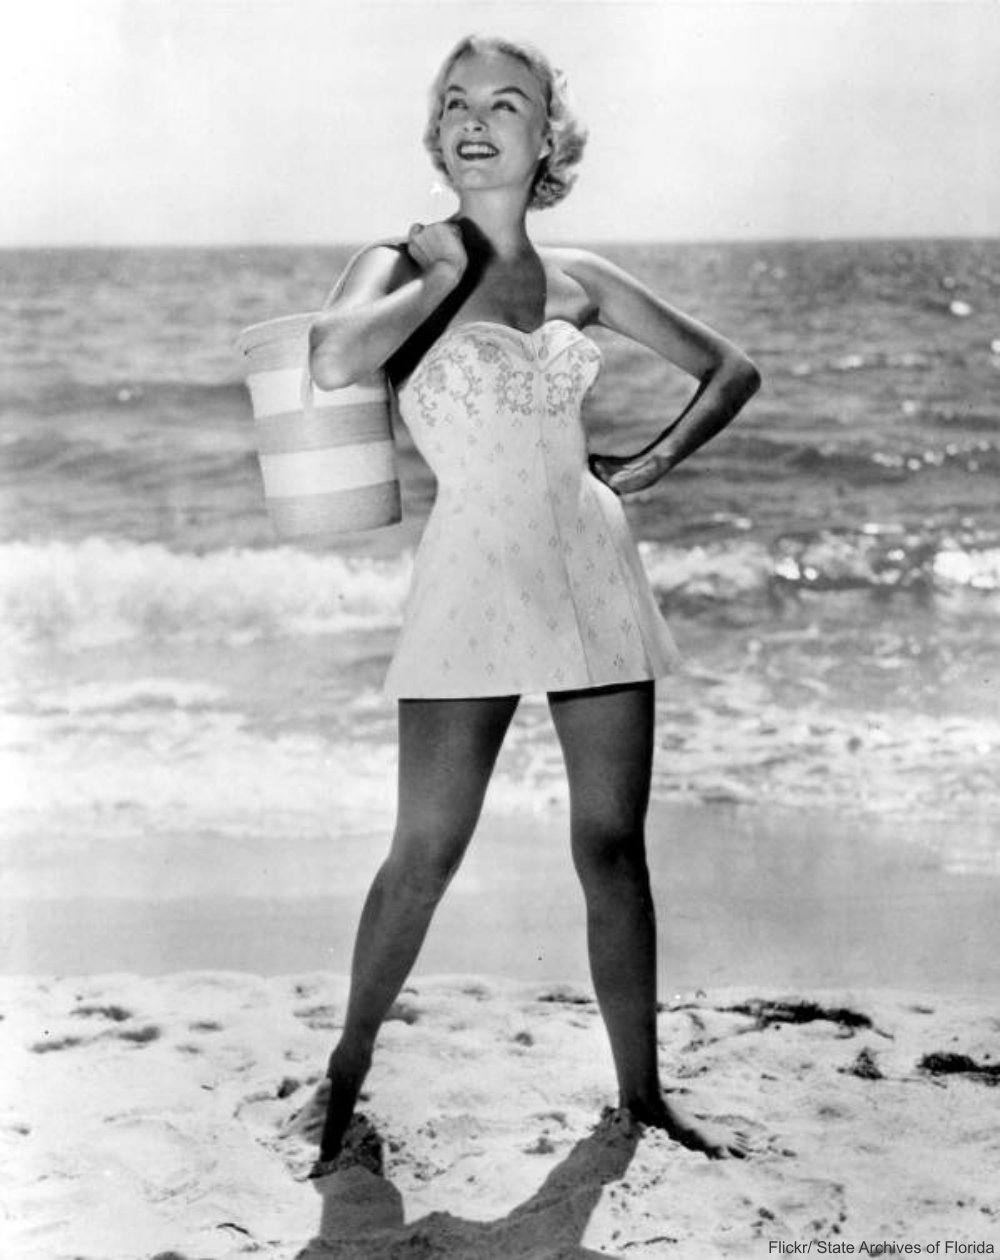 Tanned Model on Beach 1950s